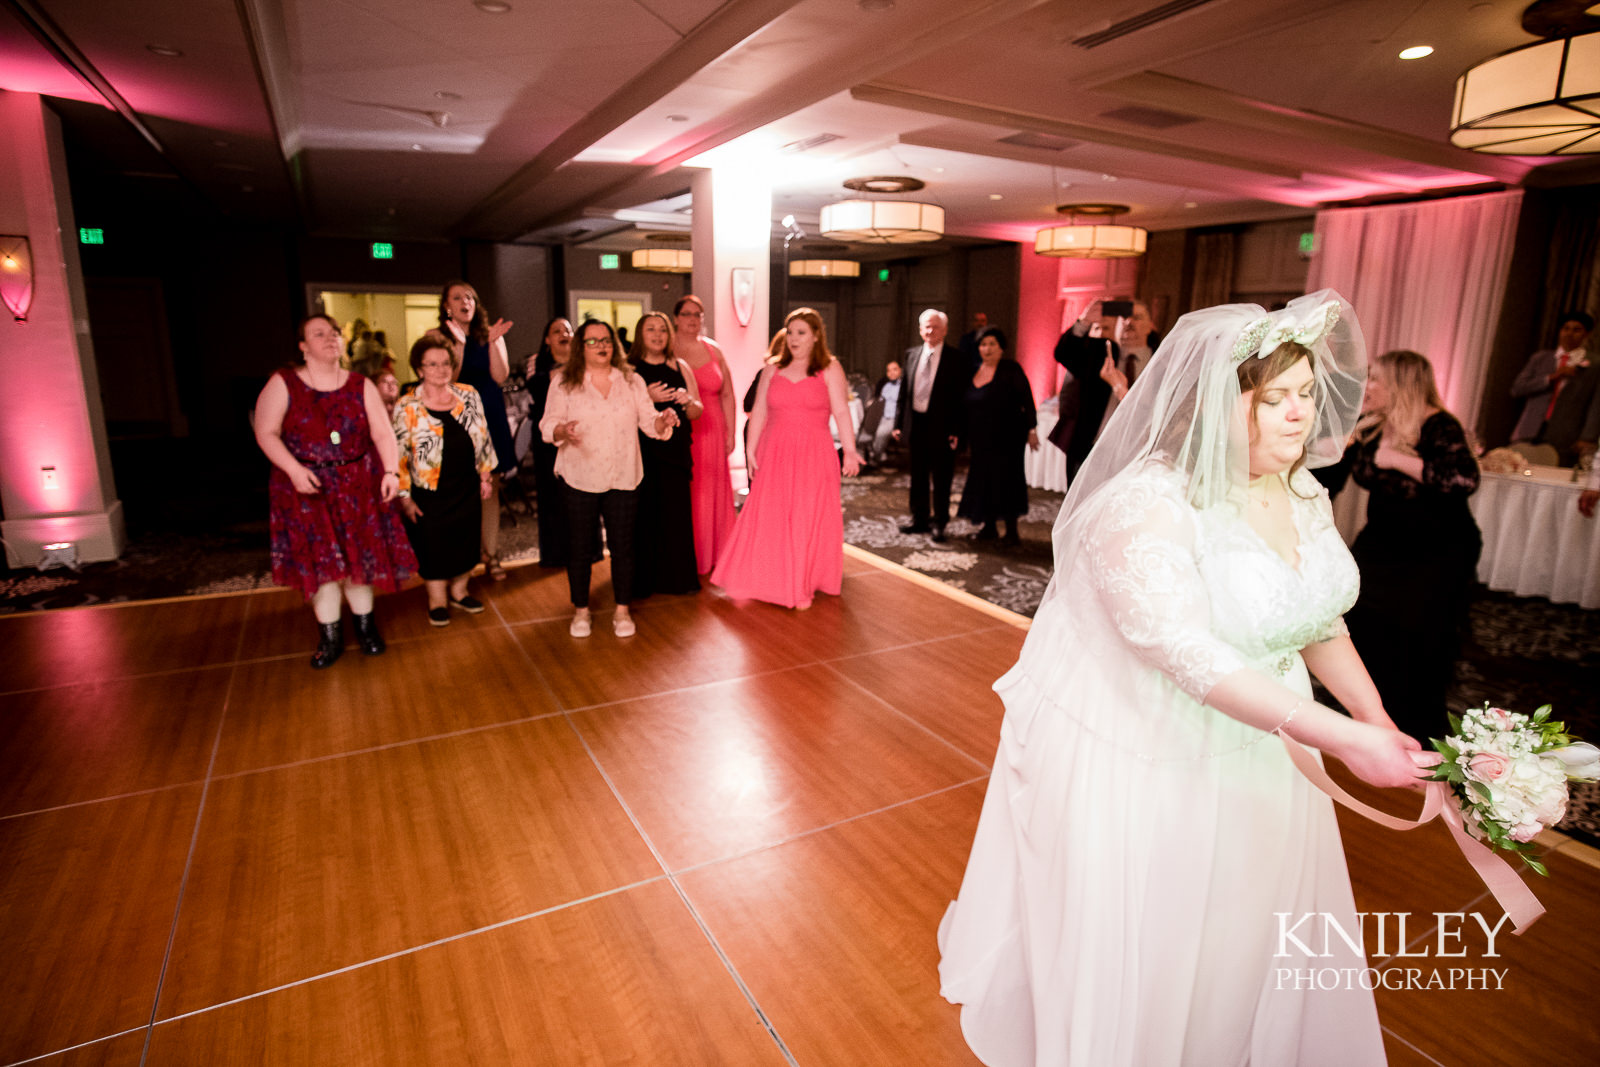 104 - Woodcliff Hotel - Rochester NY wedding photo - Kniley Photography.jpg